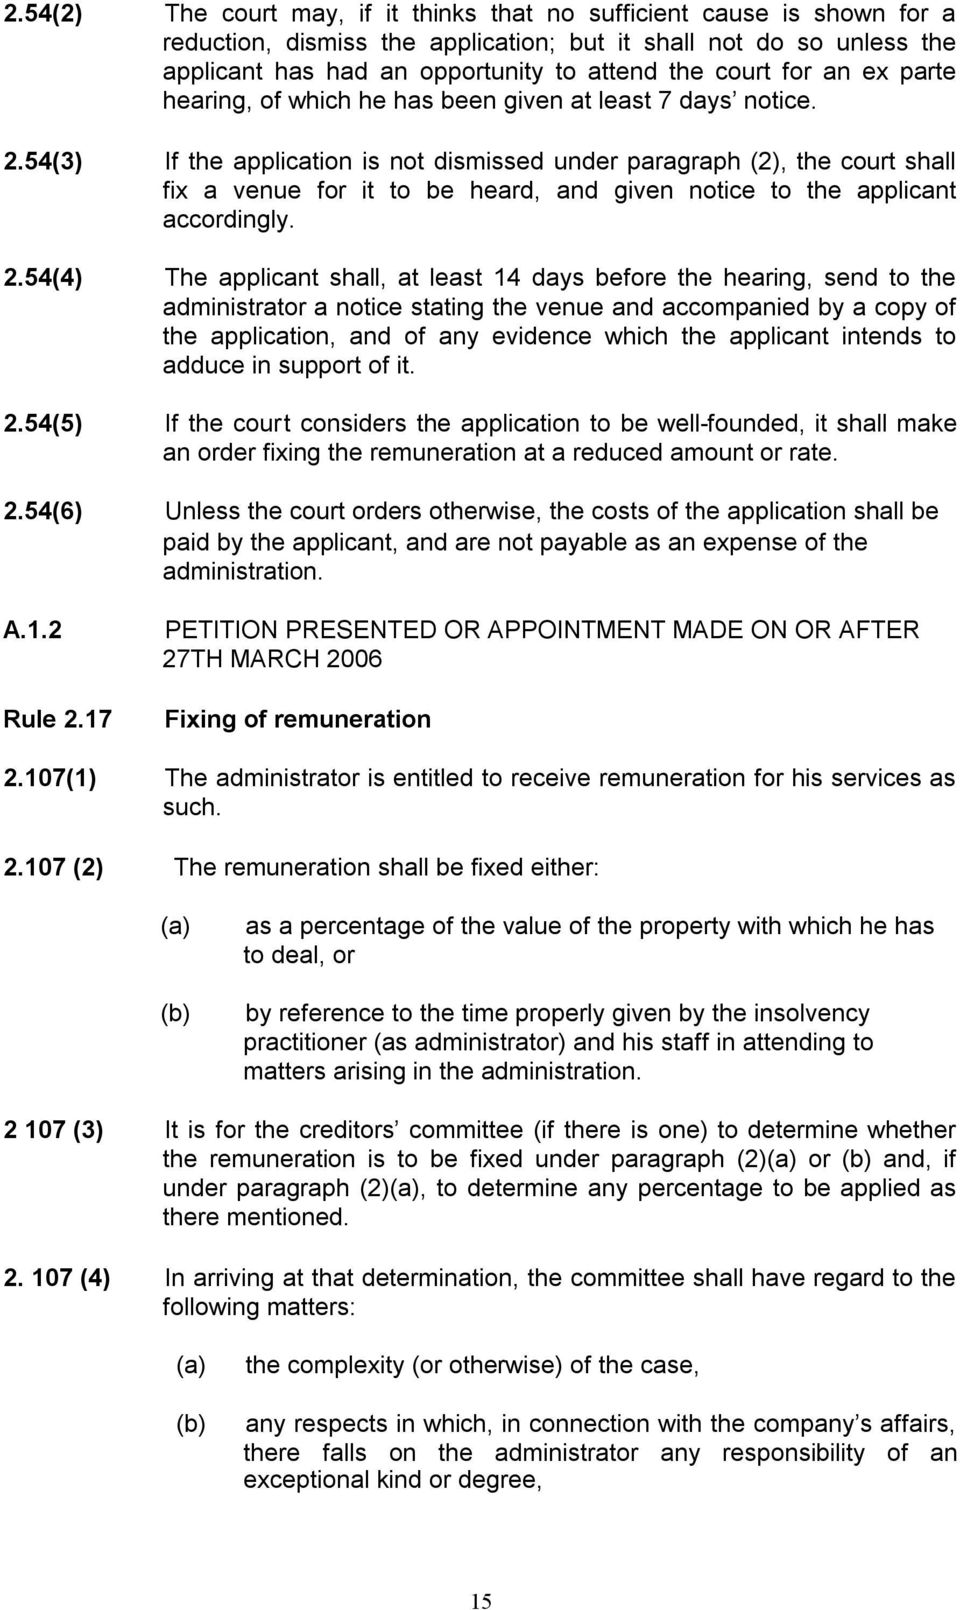 54(3) If the application is not dismissed under paragraph (2), the court shall fix a venue for it to be heard, and given notice to the applicant accordingly. 2.